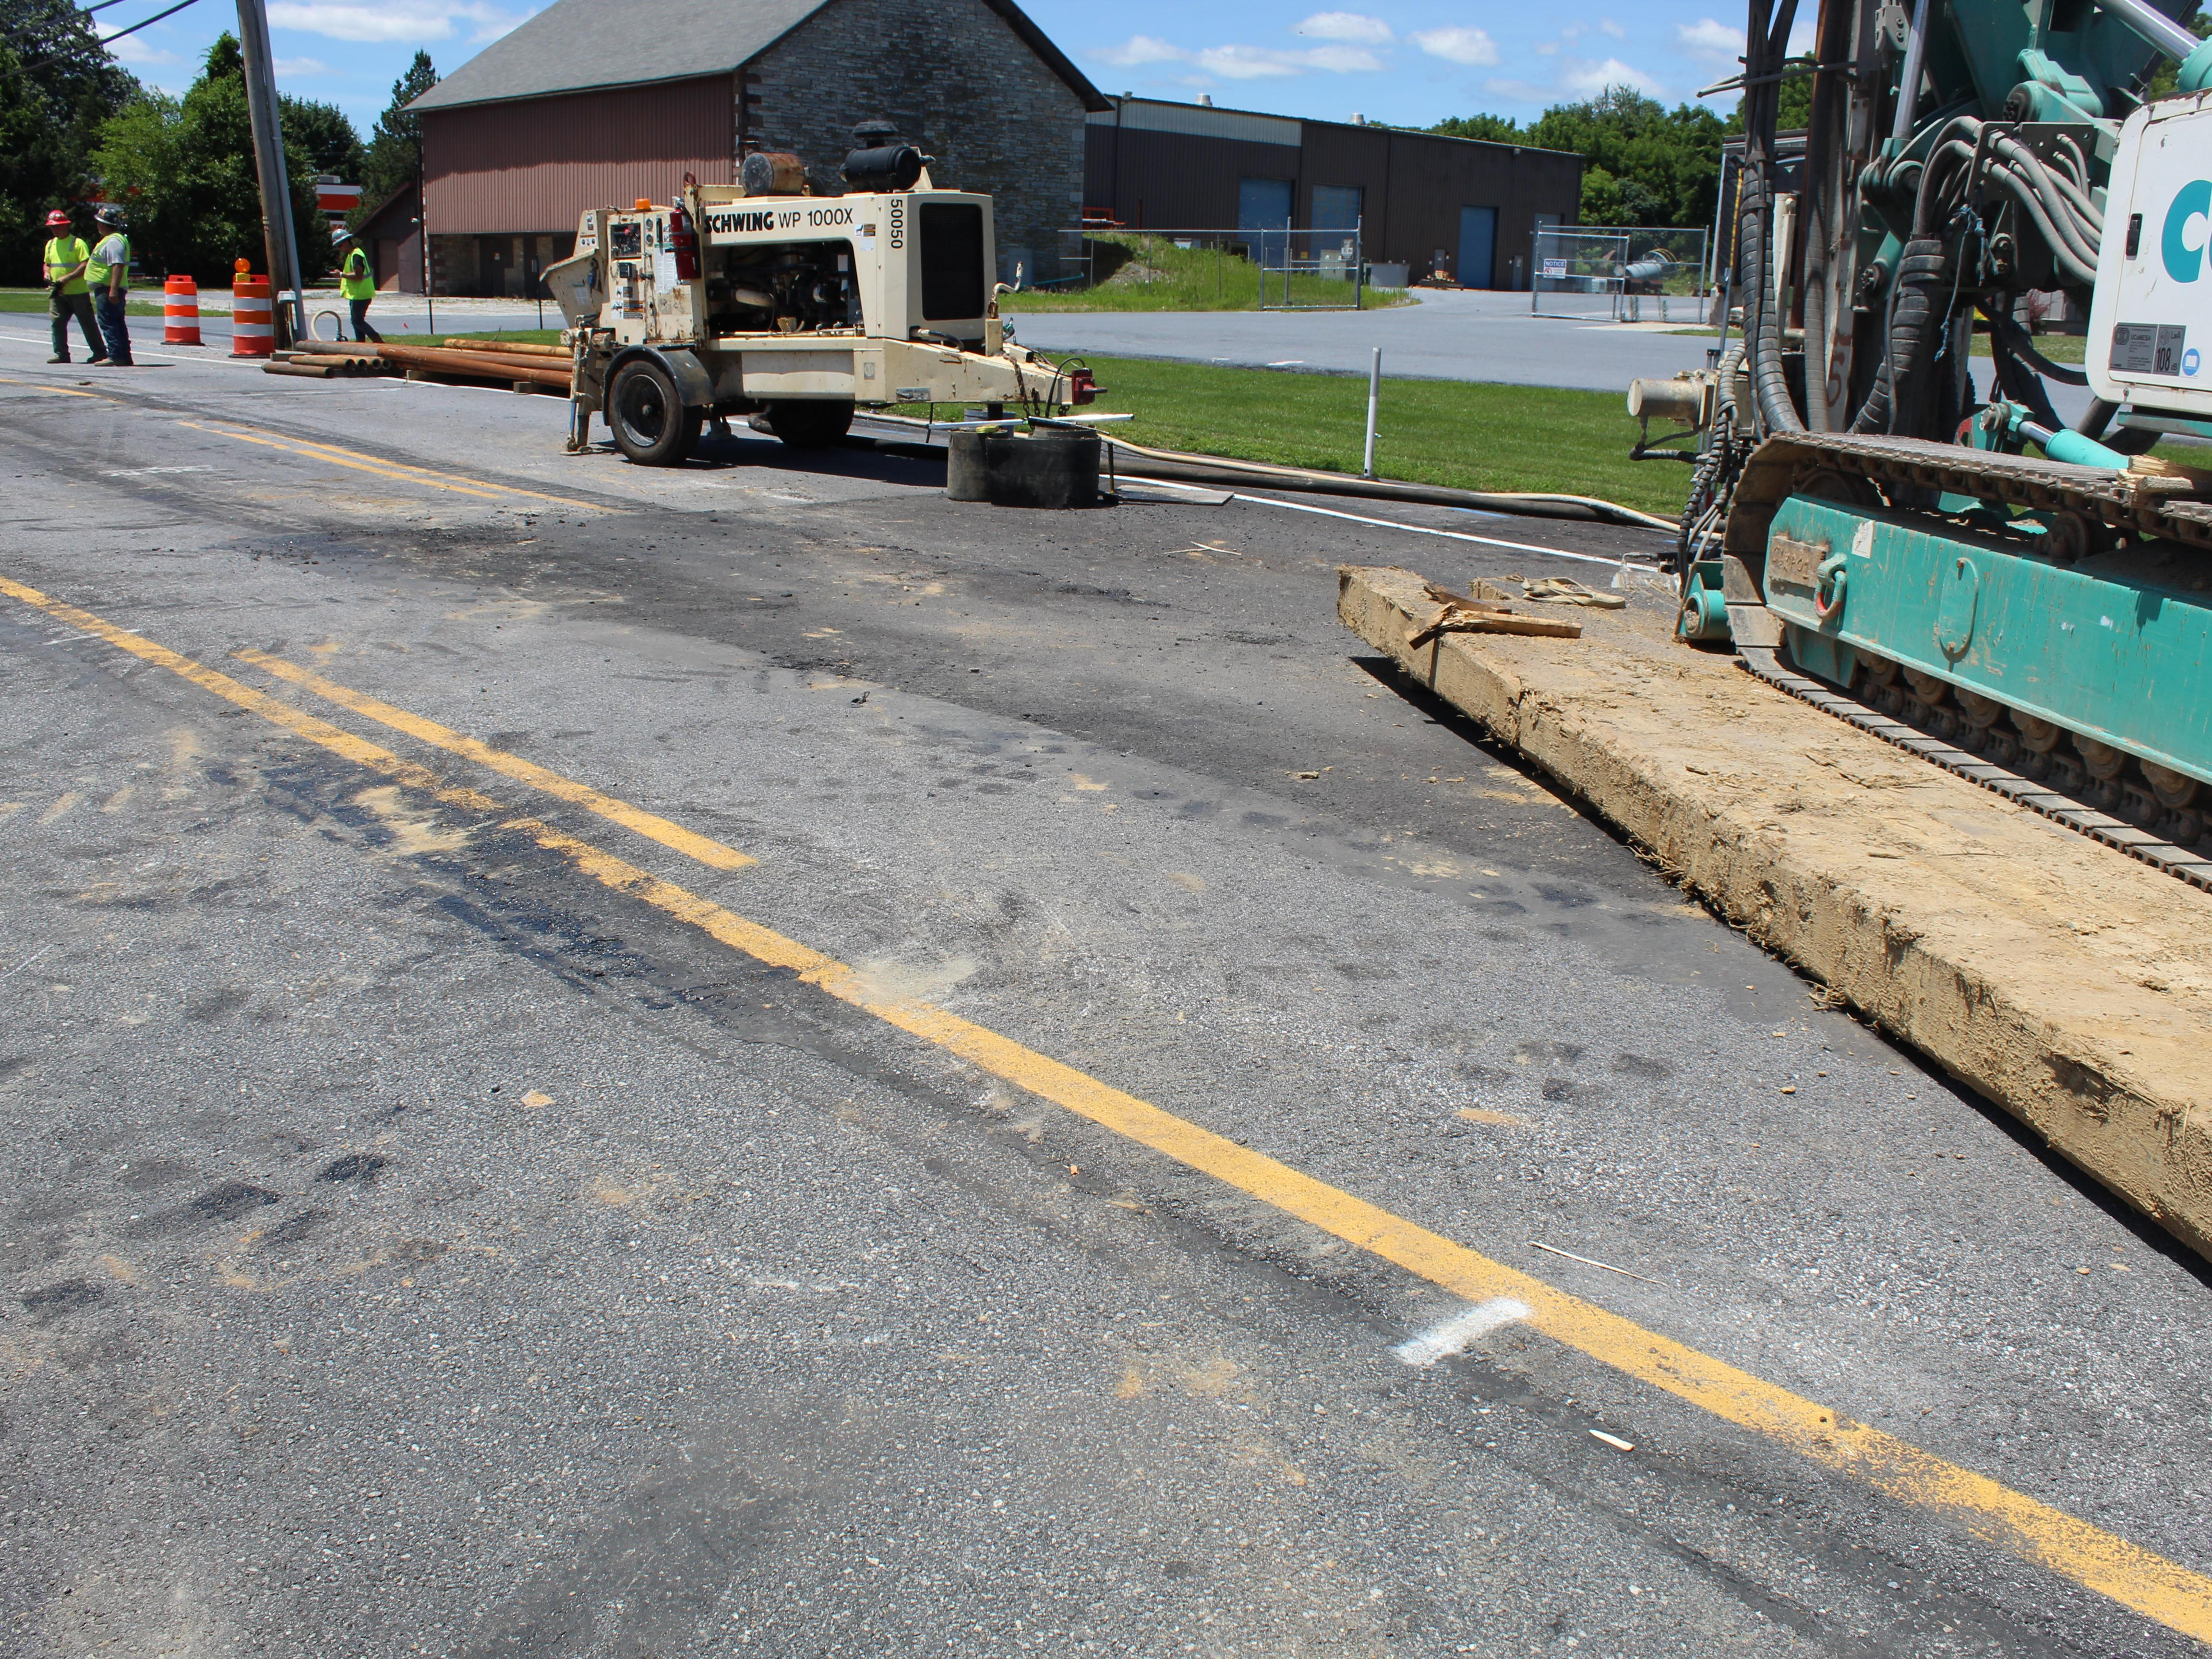 Crews work to fill sinkhole on Route 422 in Palmyra; unknown if road will reopen by July 4